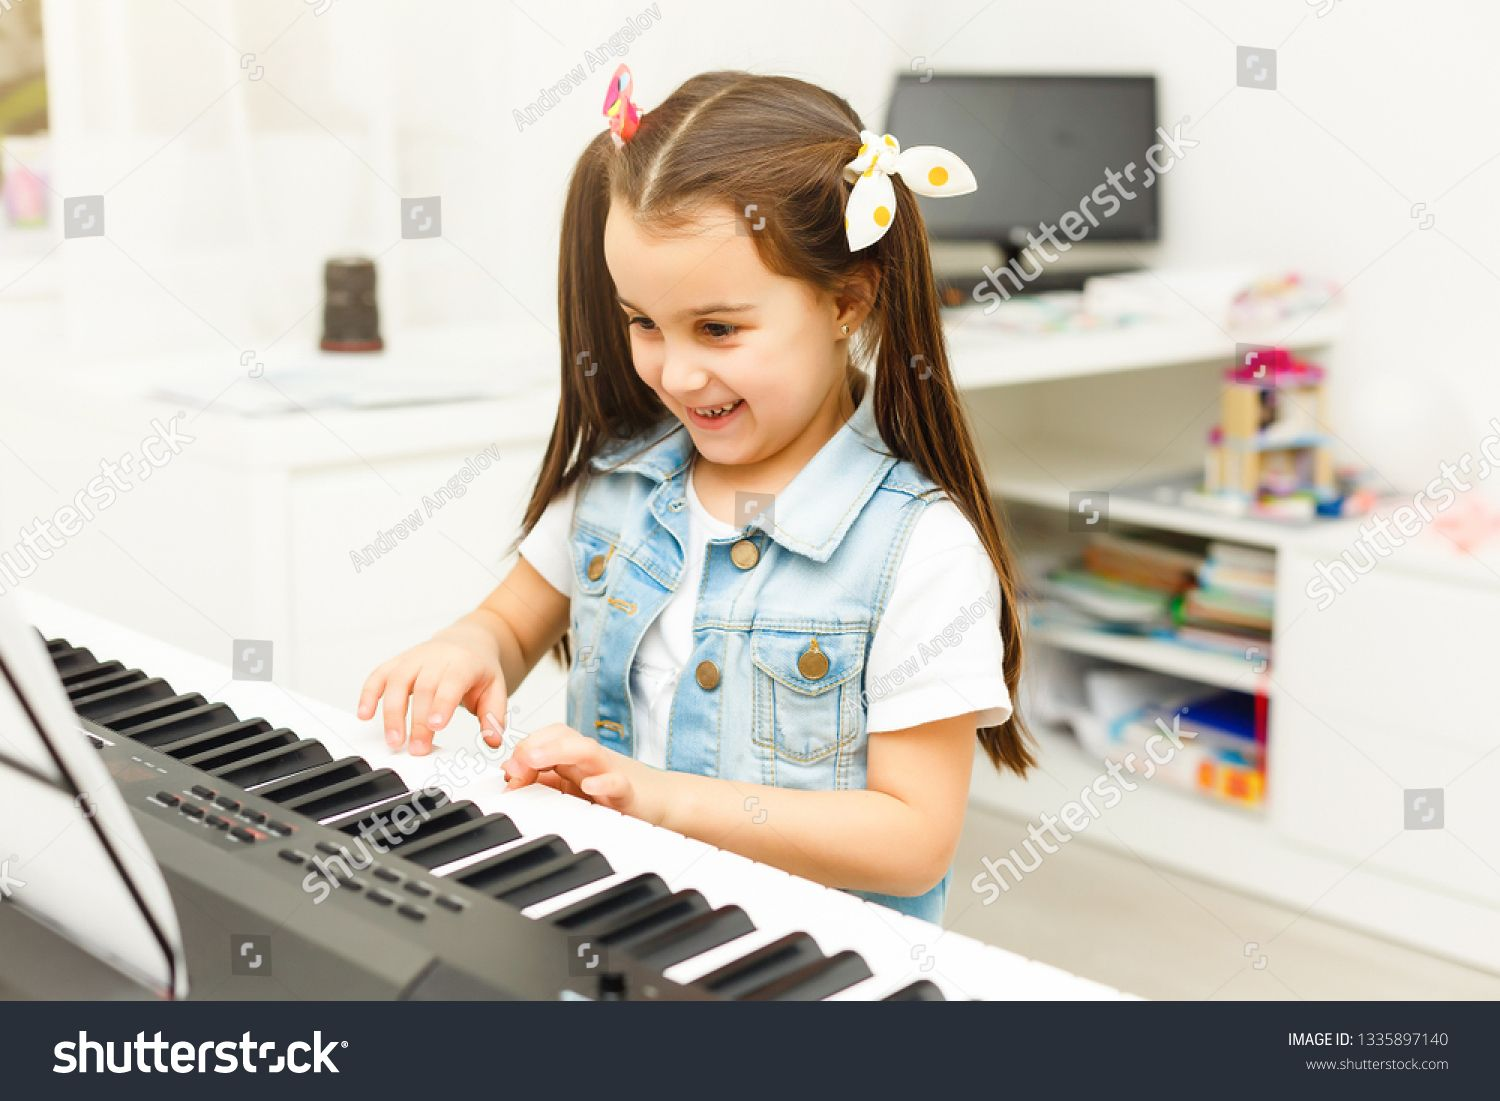 Pin By Susi Sumiati On Birthdays Decorations Playing Piano Playing Piano Photography Music Instruments